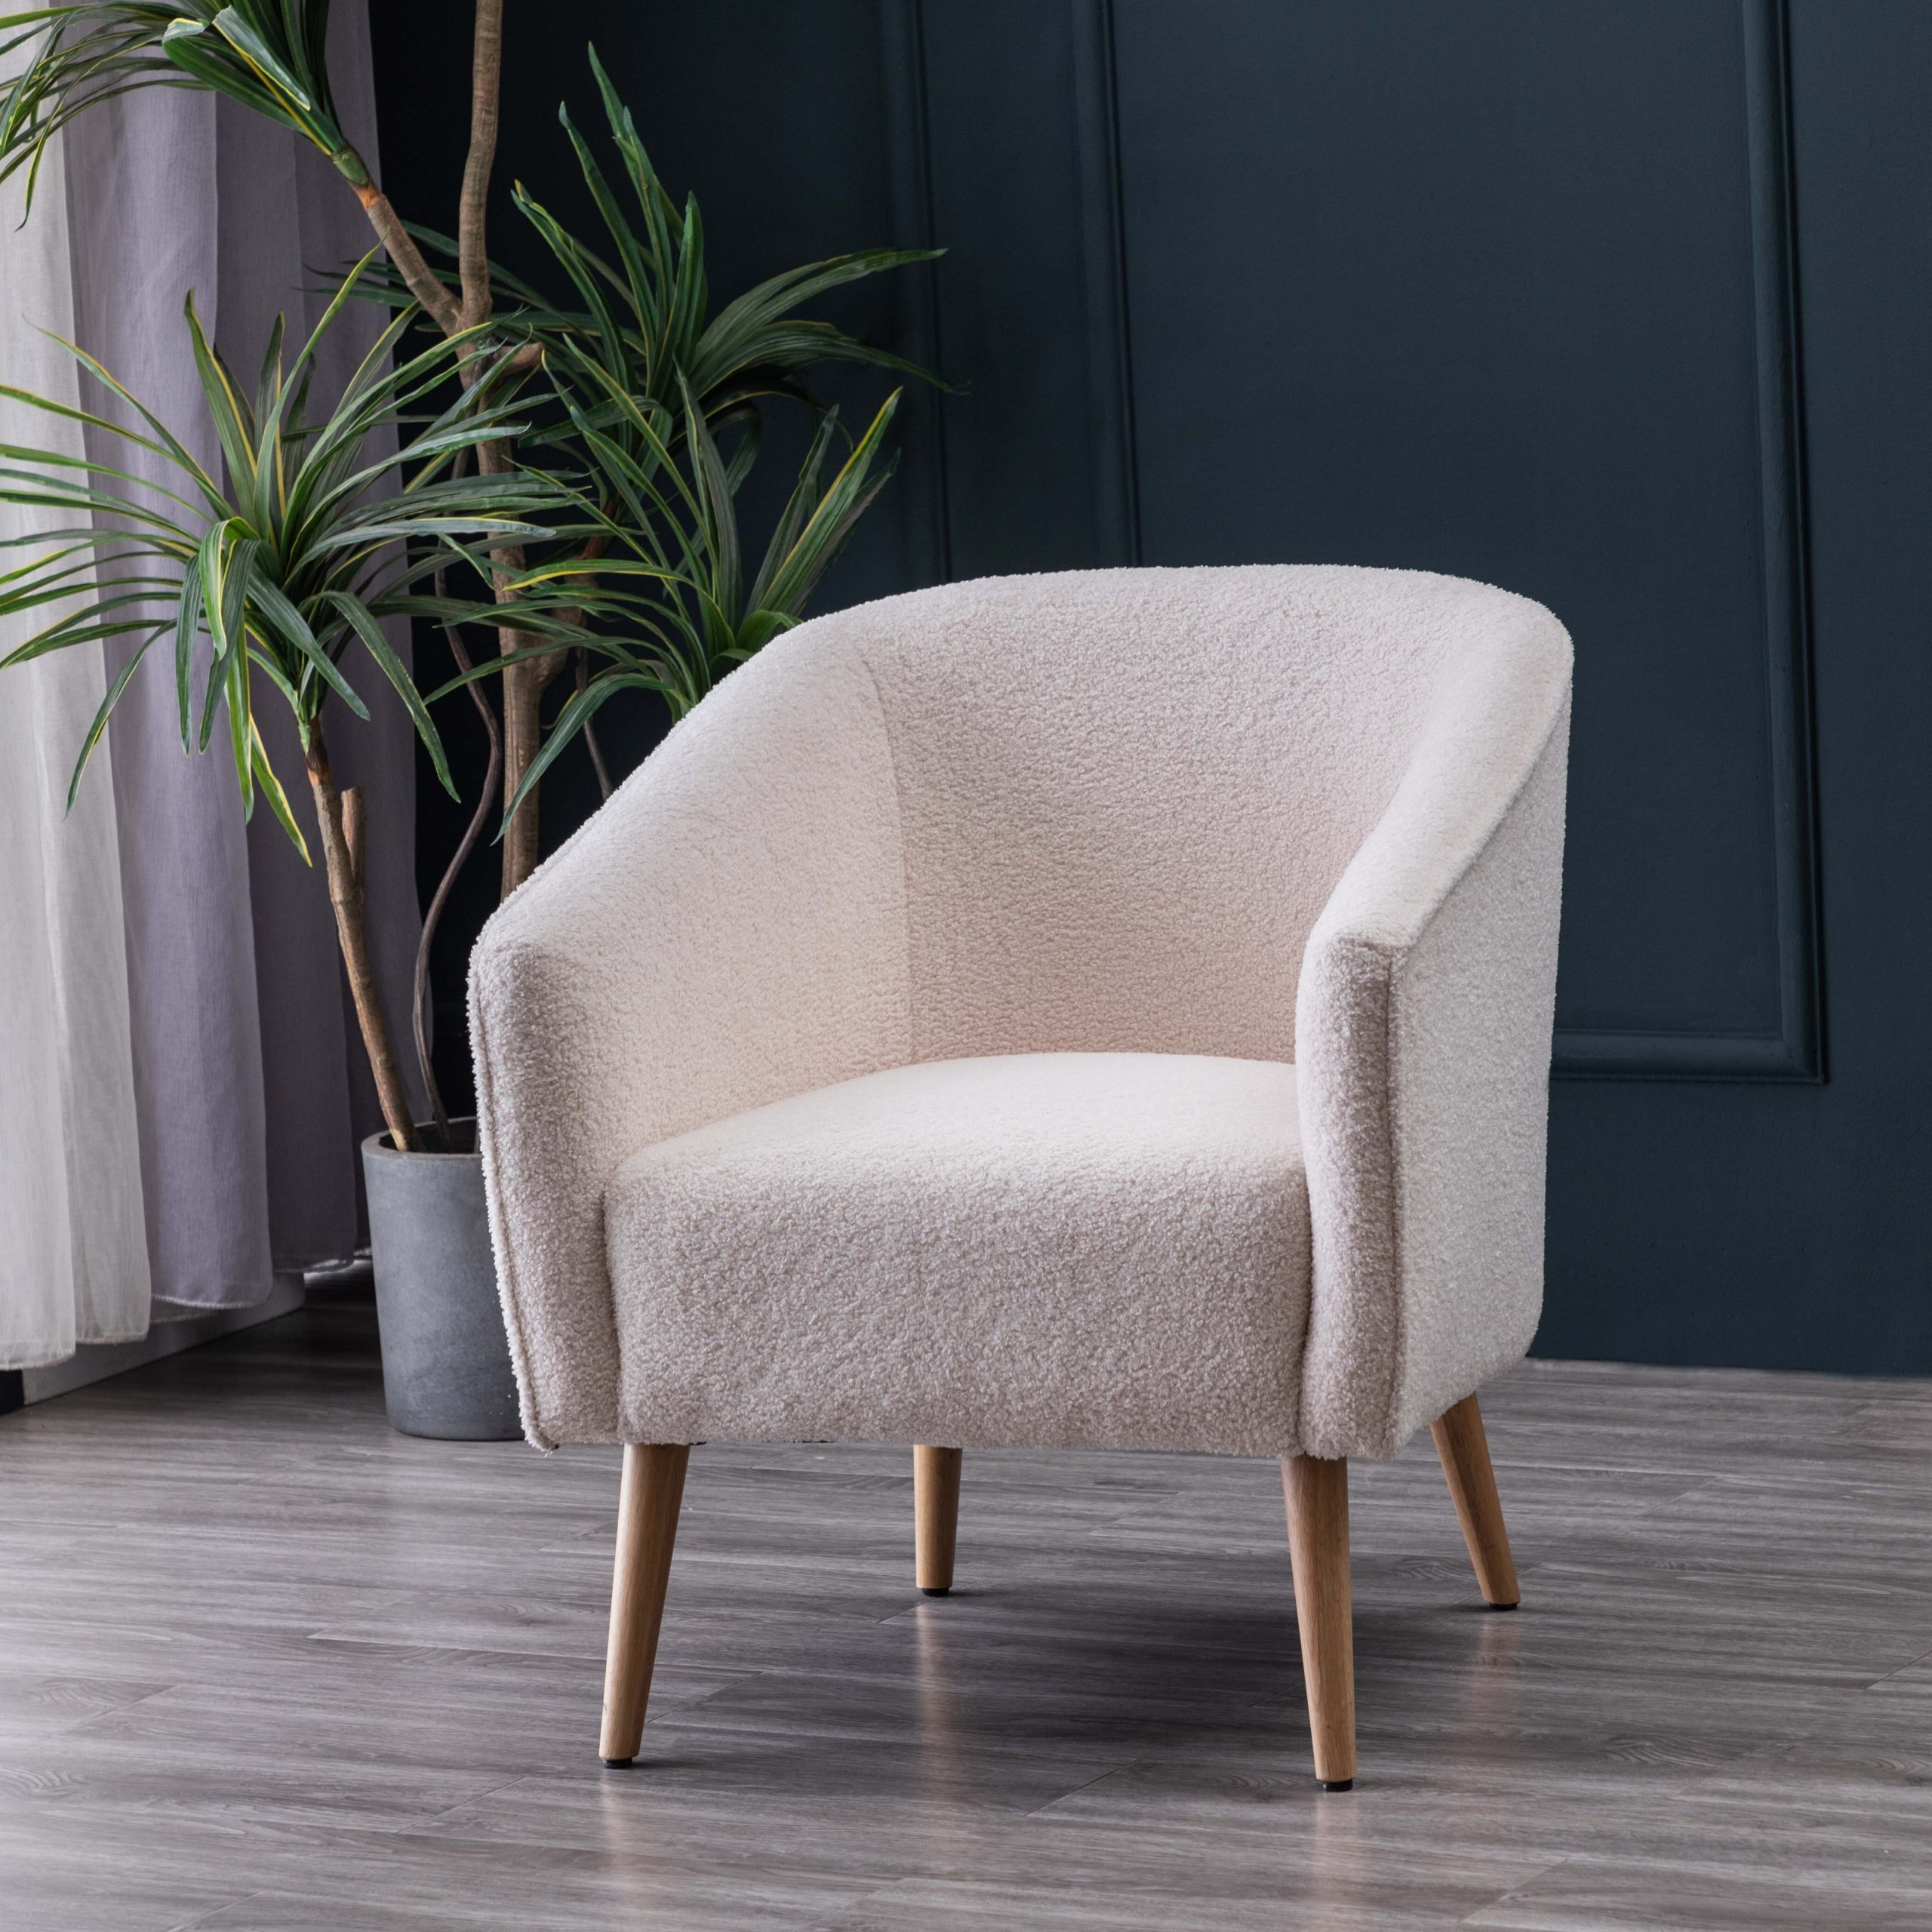 Joss & Main Schooley Faux Shearling Barrel Chair & Reviews With Regard To Current Danow Polyester Barrel Chairs (View 8 of 20)